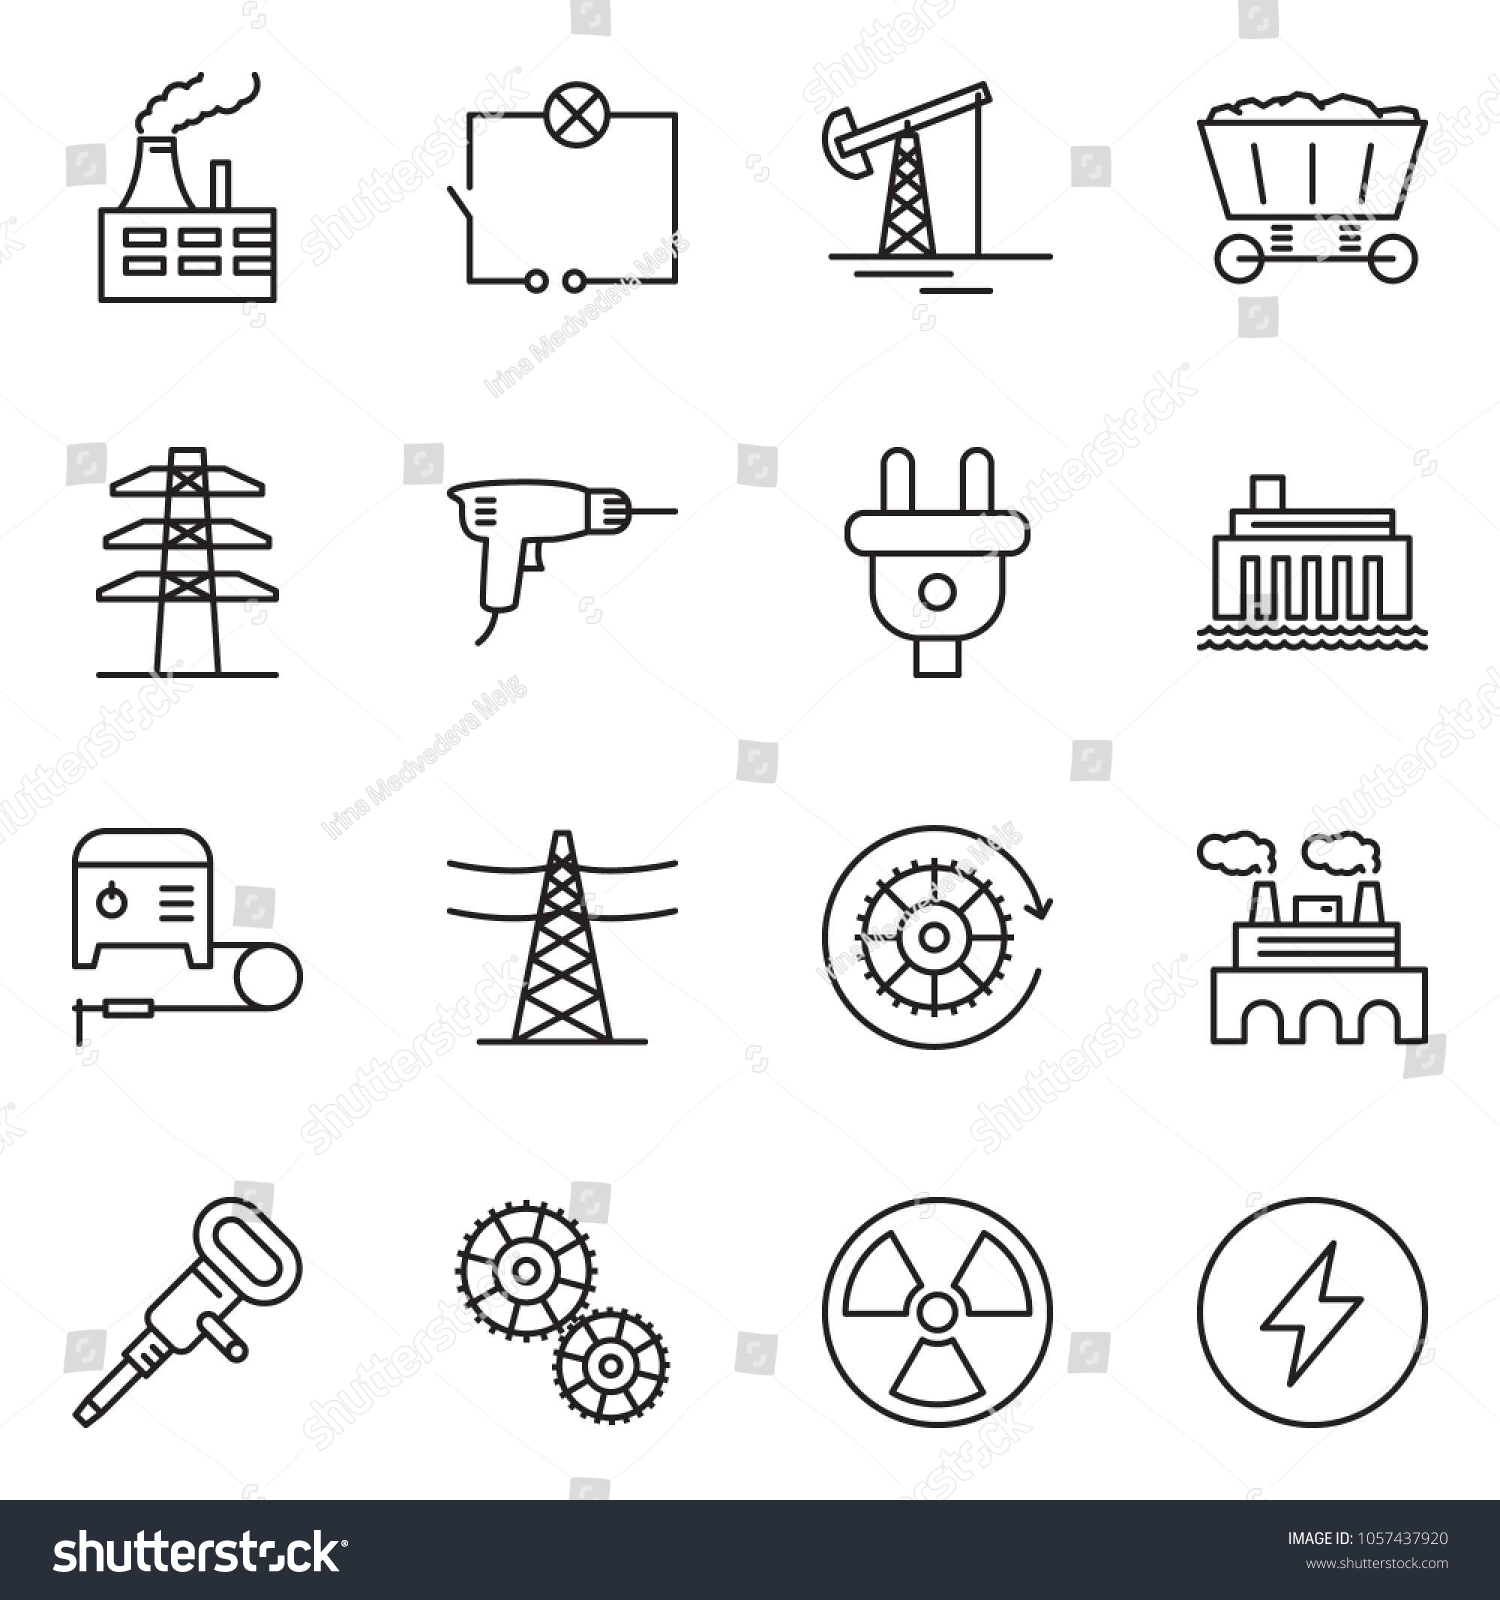 Thin Line Icon Set Oil Jack Stock Vector Royalty Free 1057437920 Hydroelectric Power Plant Schematic Diagram Factory Drill Wiring Jackhammer